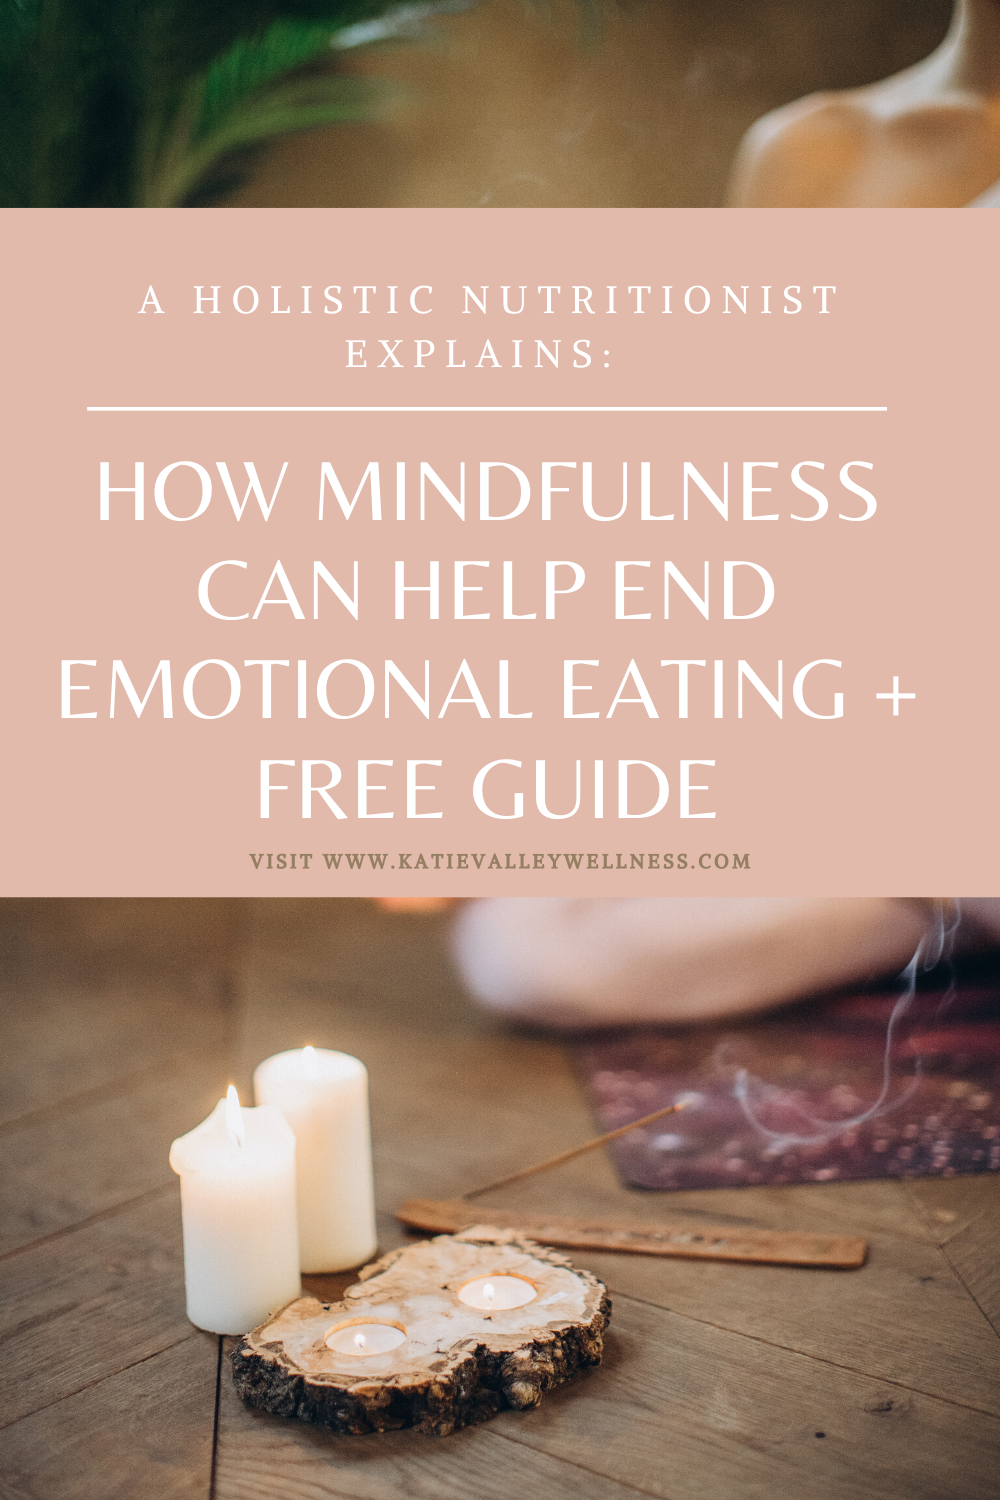 How Mindfulness Can Help End Emotional Eating